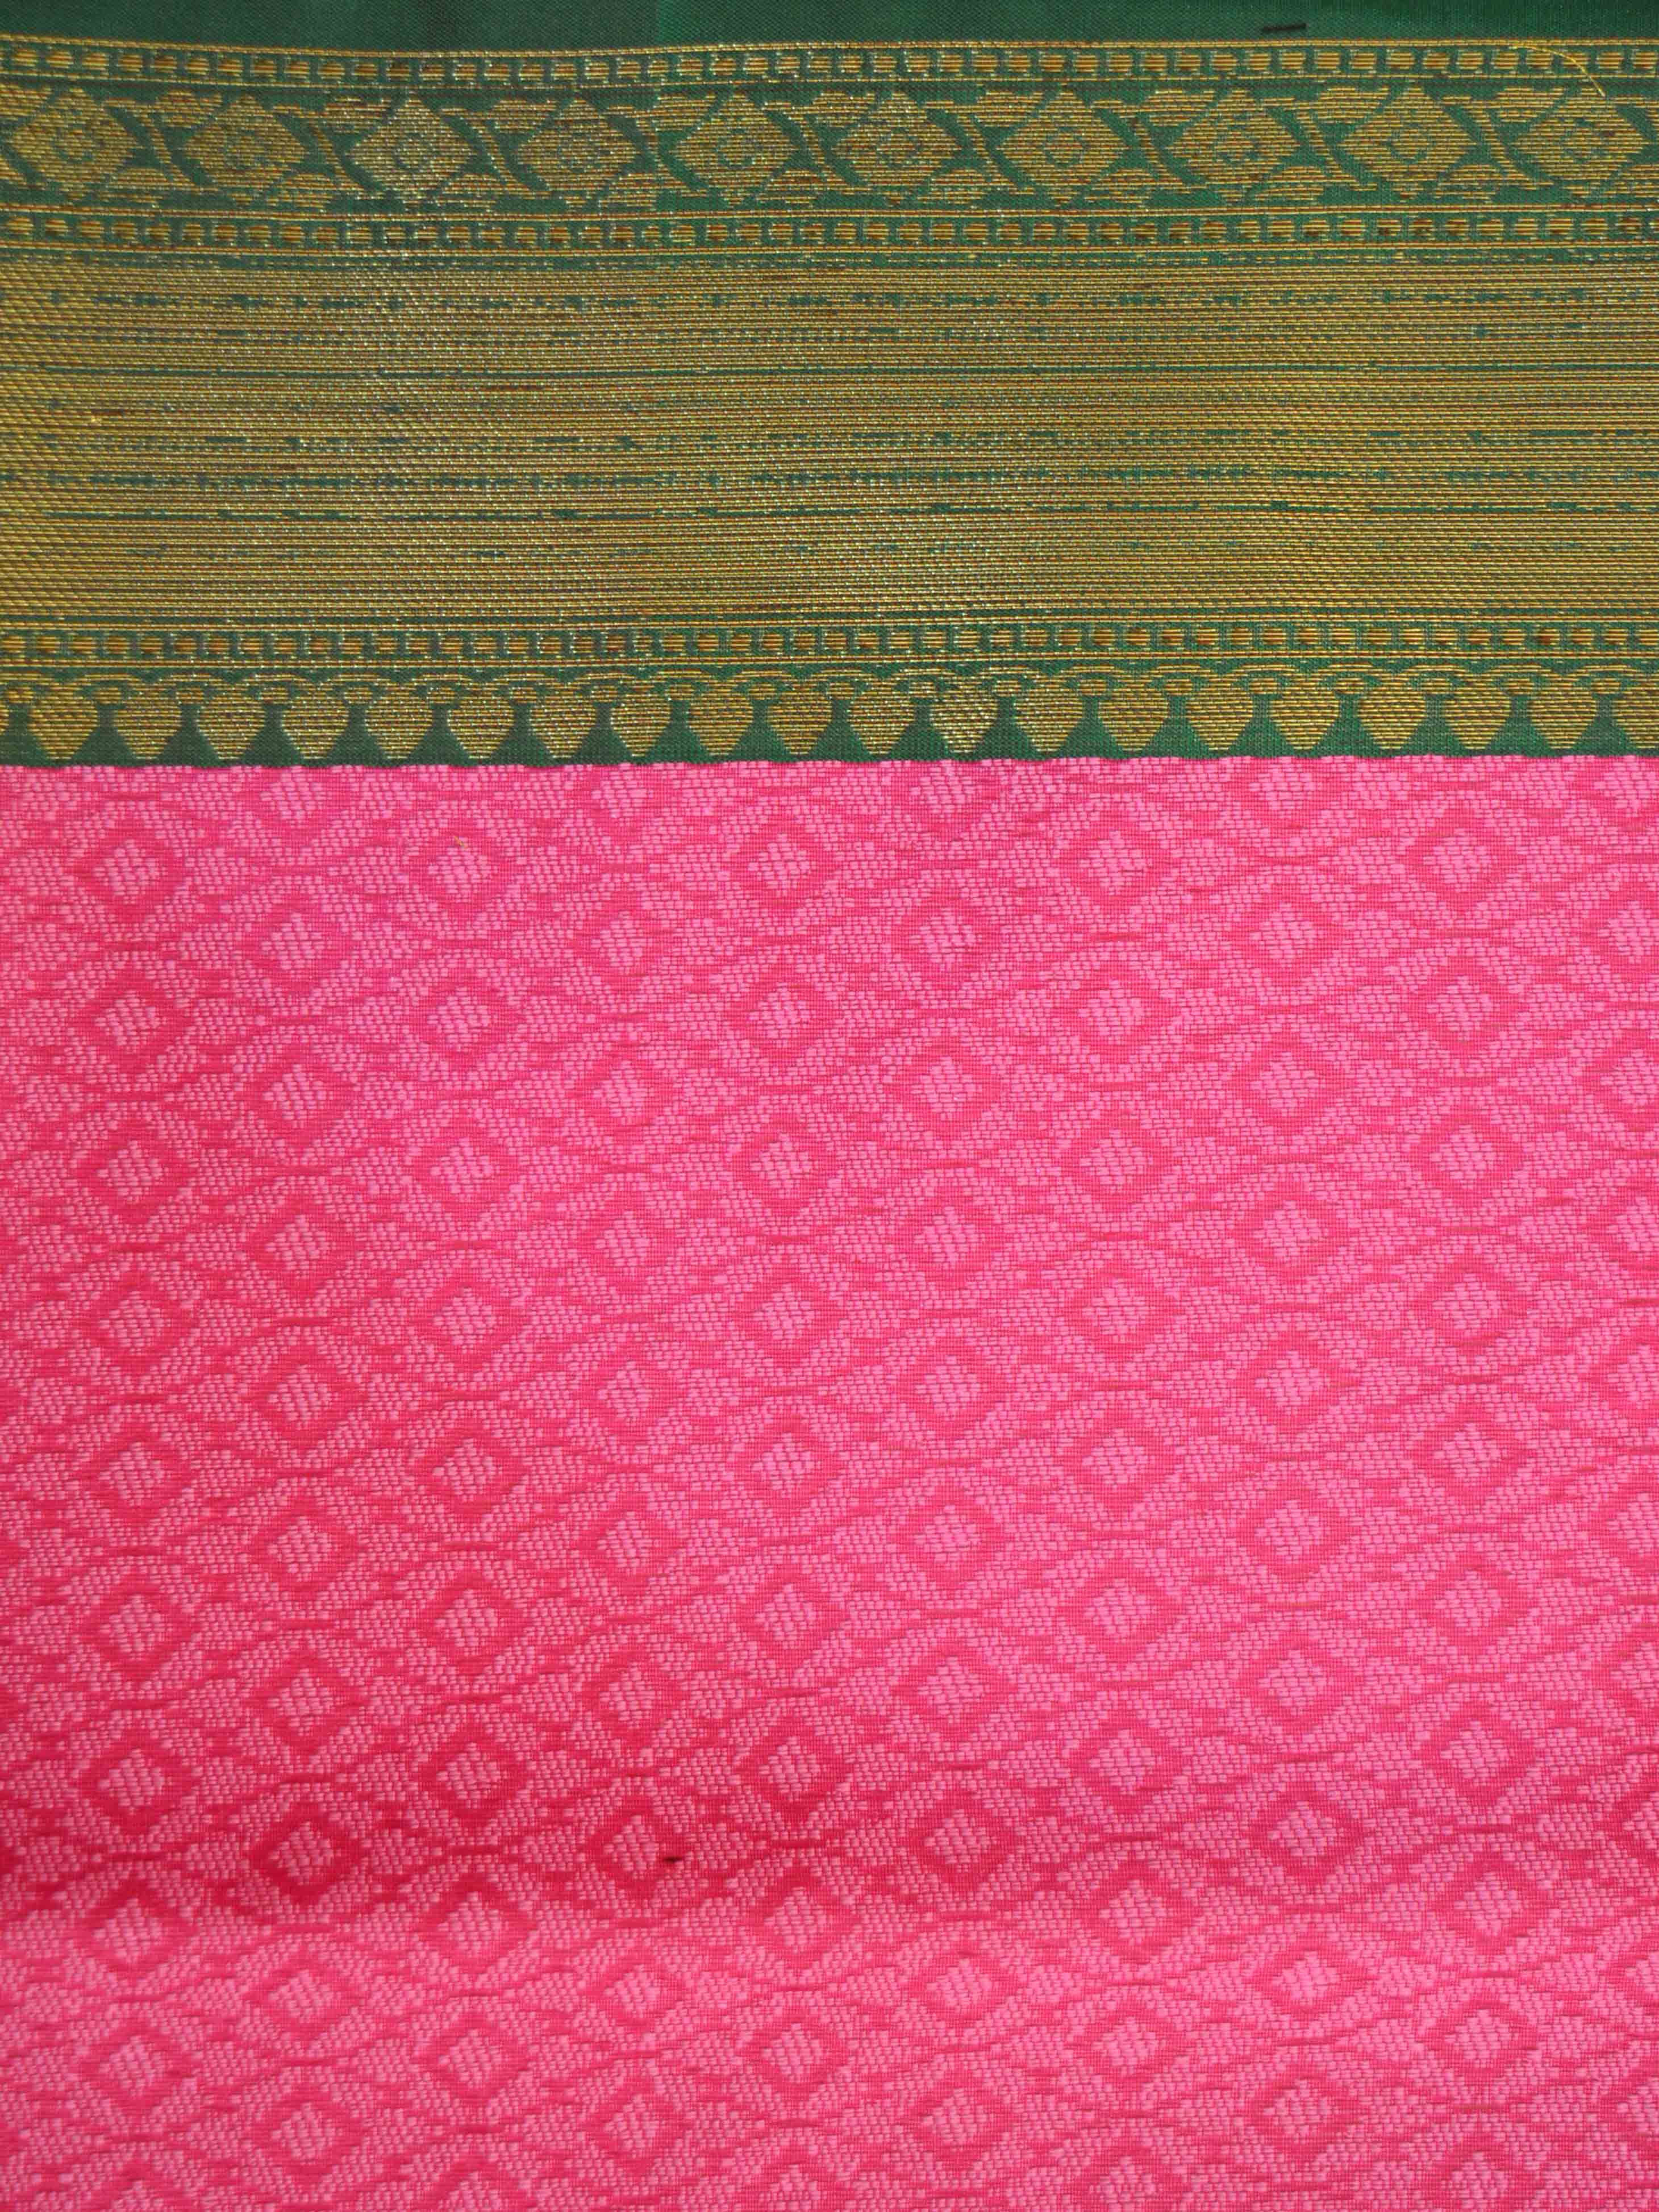 Banarasee Kora Muslin Saree With Tanchoi Weaving & Green Floral Border-Pink